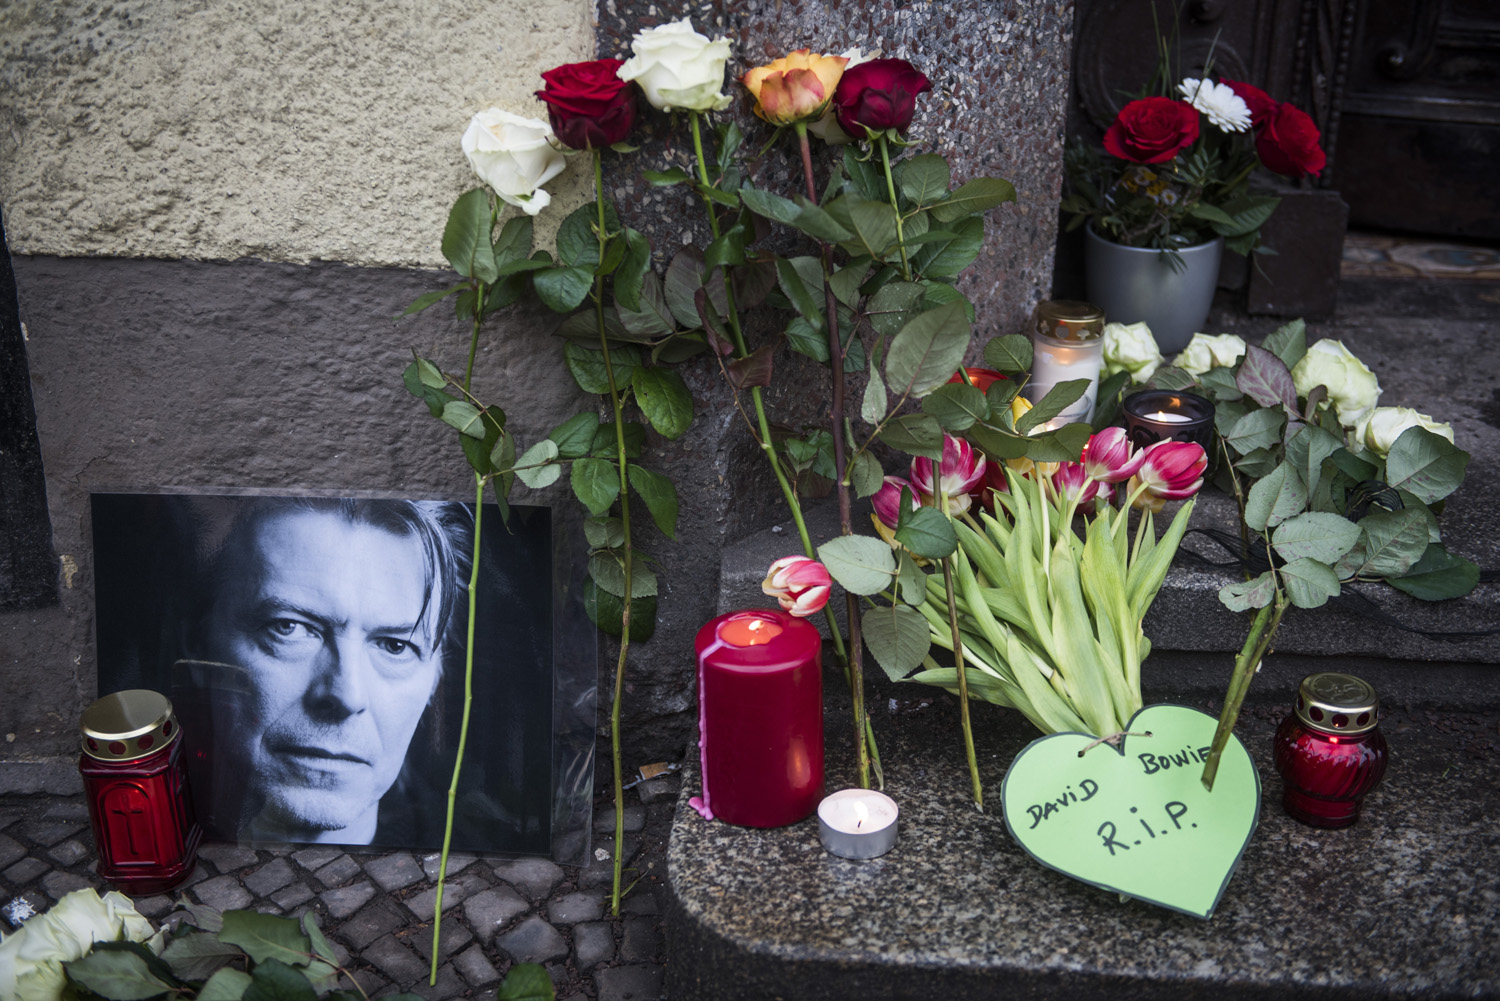 Tributes to British rock legend David Bowie are seen outside his former home in Berlin's Hauptstrasse 155 on January 11, 2016. British rock music legend David Bowie has died after a long battle with cancer, his official Twitter and Facebook accounts said. / AFP / ODD ANDERSEN